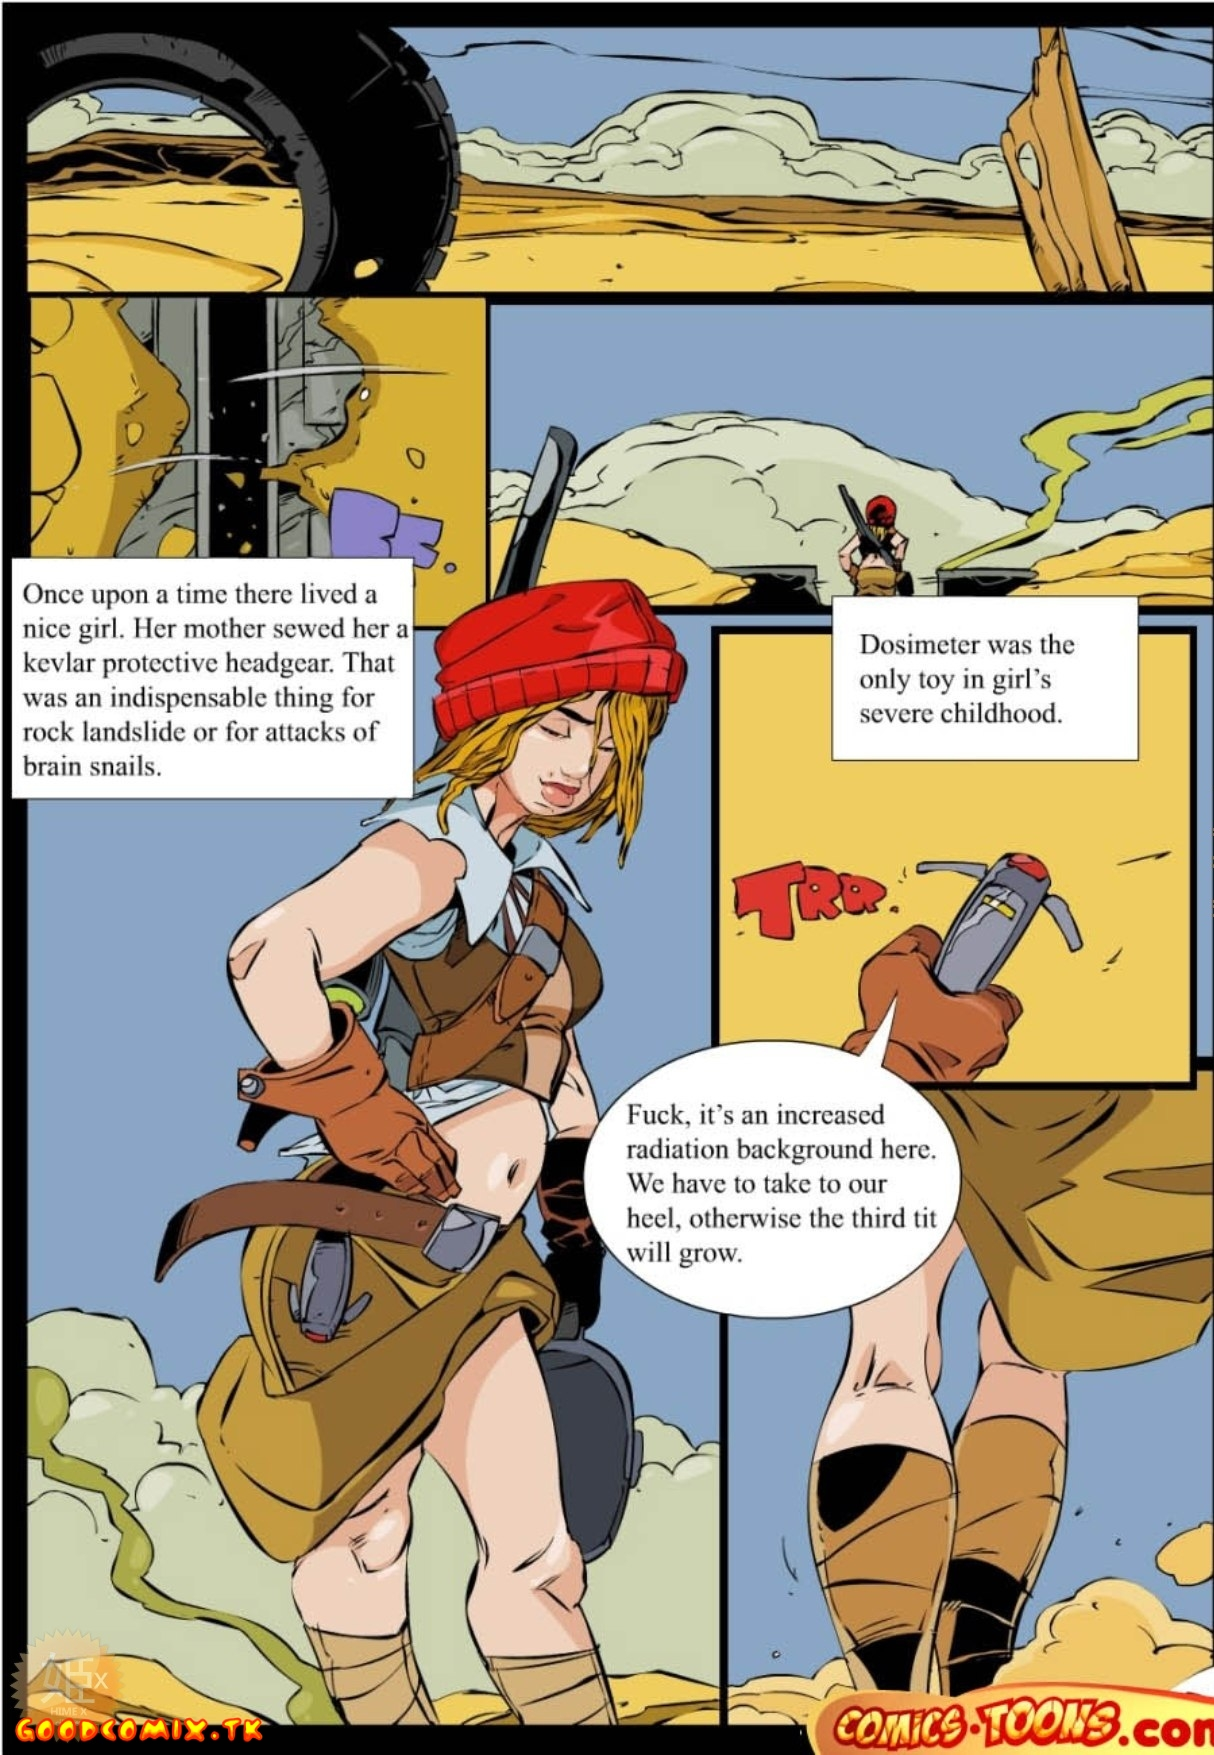 Goodcomix.tk Little Red Riding Hood - [Comics-Toons][Okunev] - The Postapocalyptic Red Riding Hood